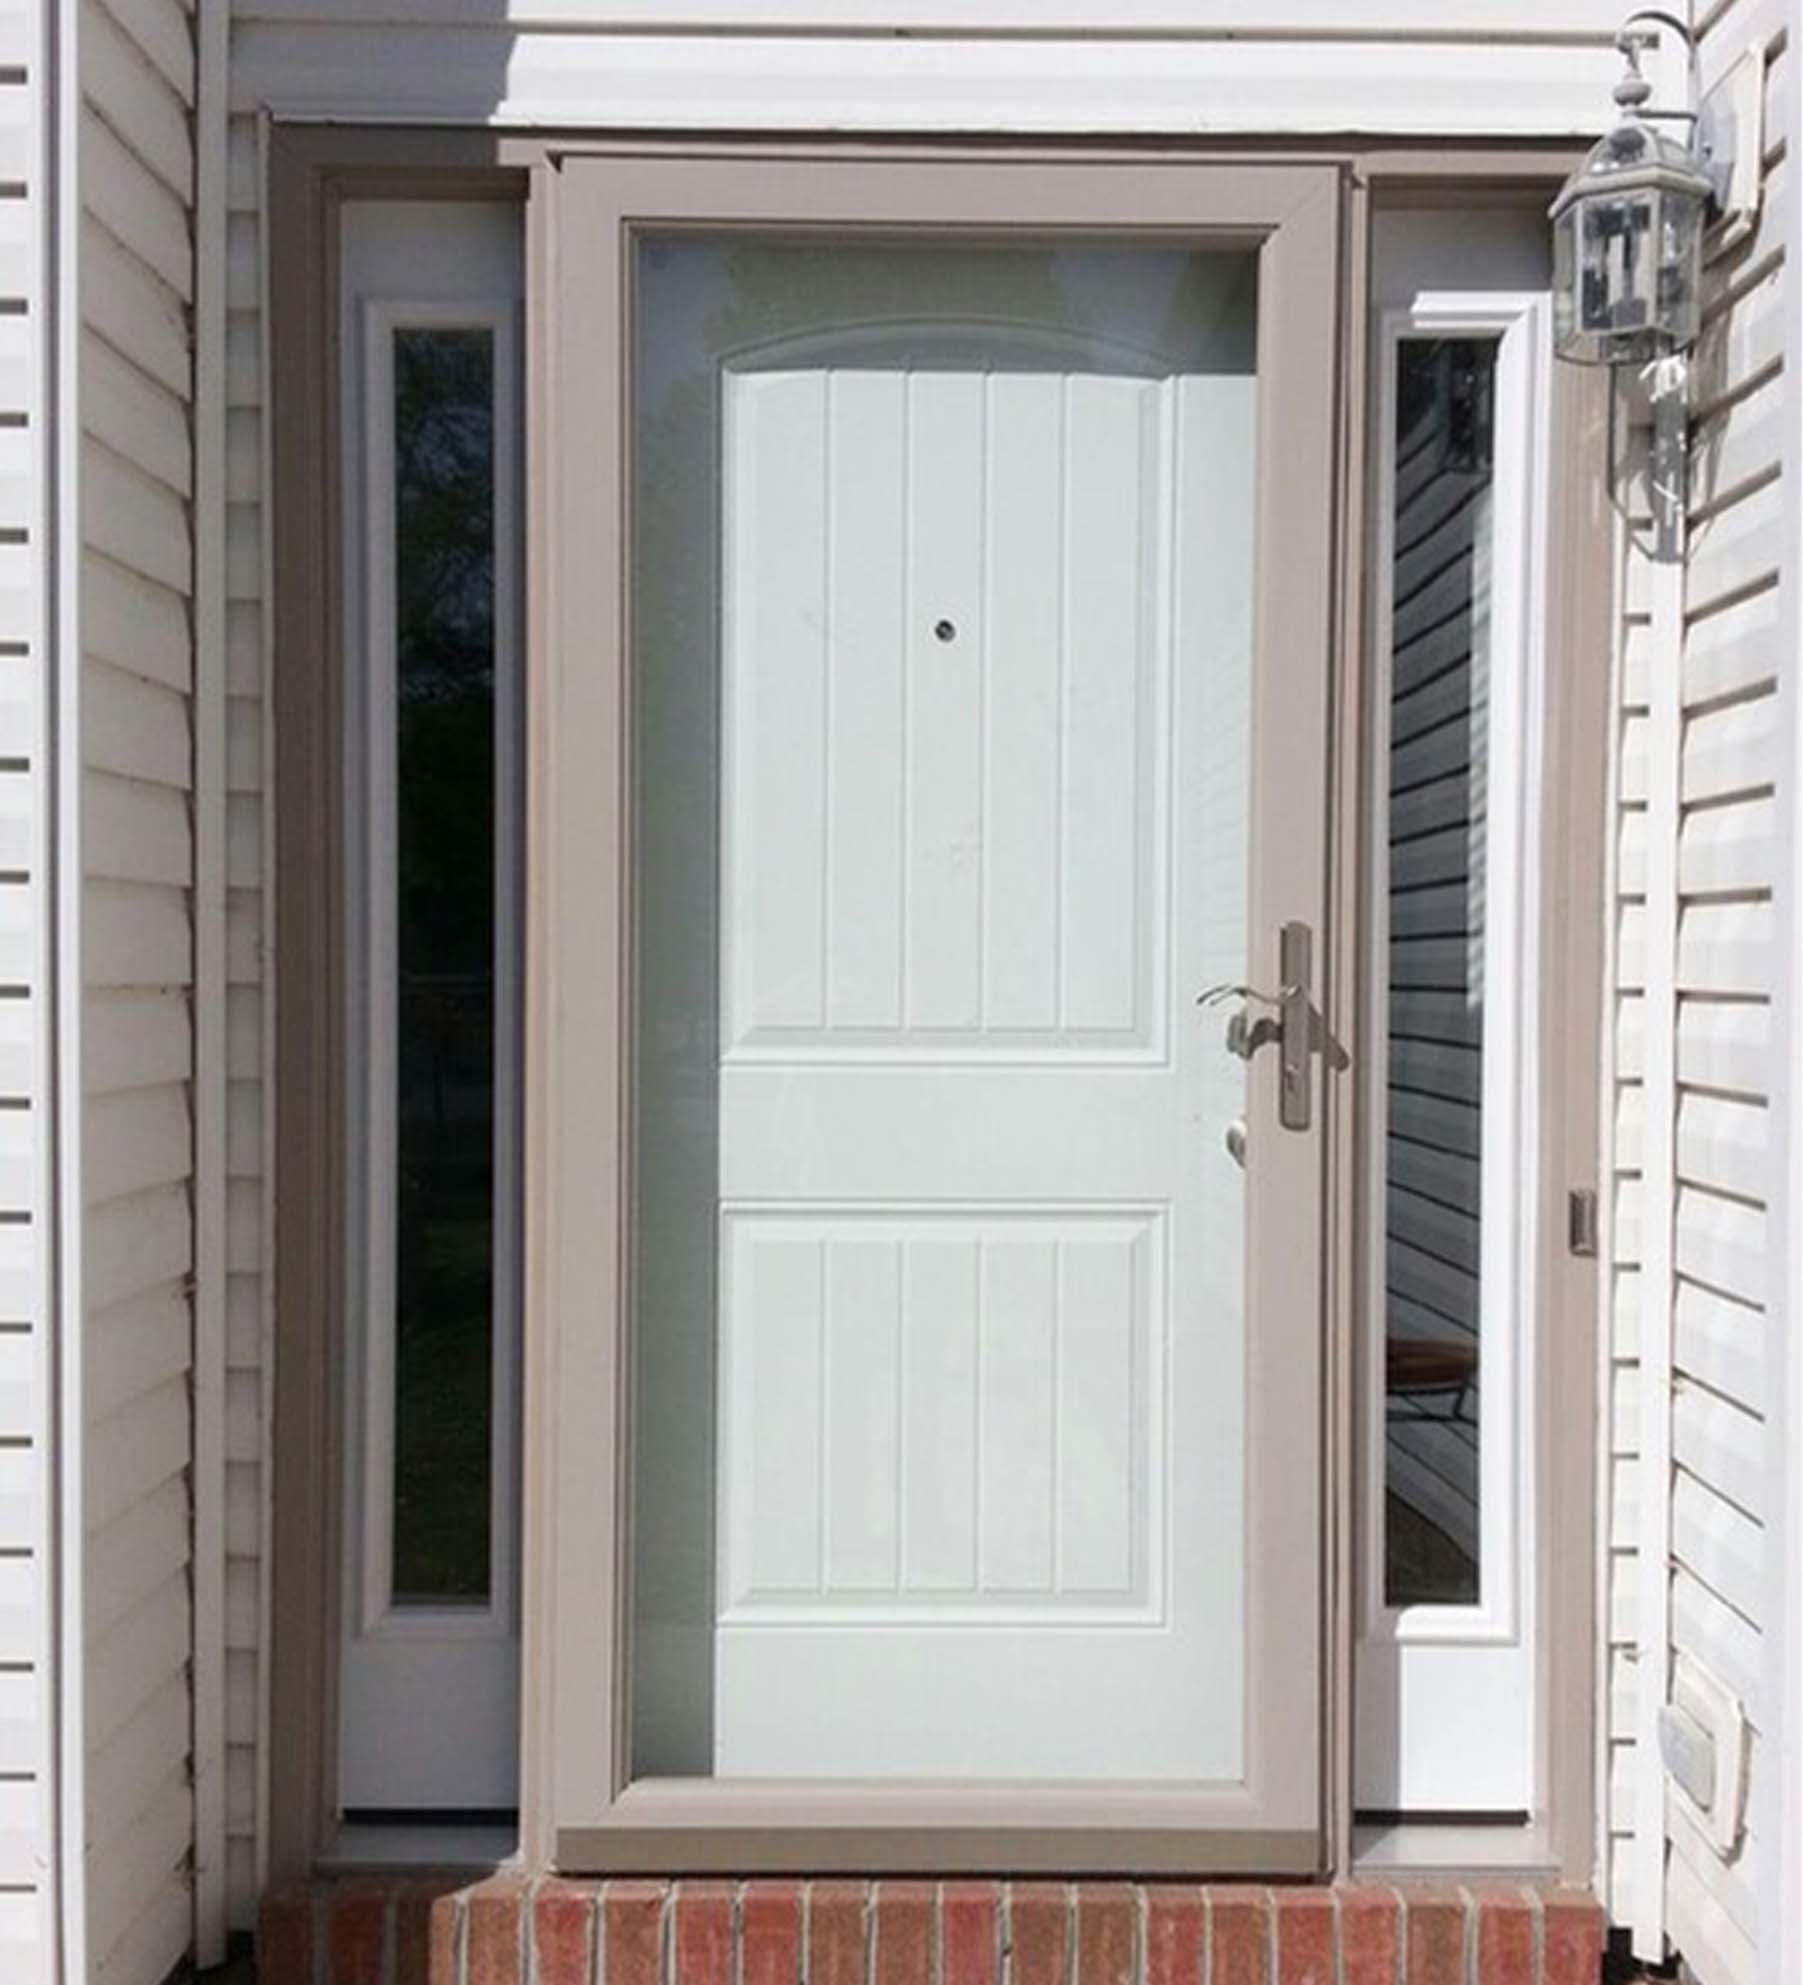 INSTALLED Larson Classic Full View Storm Door w/ Hardware STARTING      $421